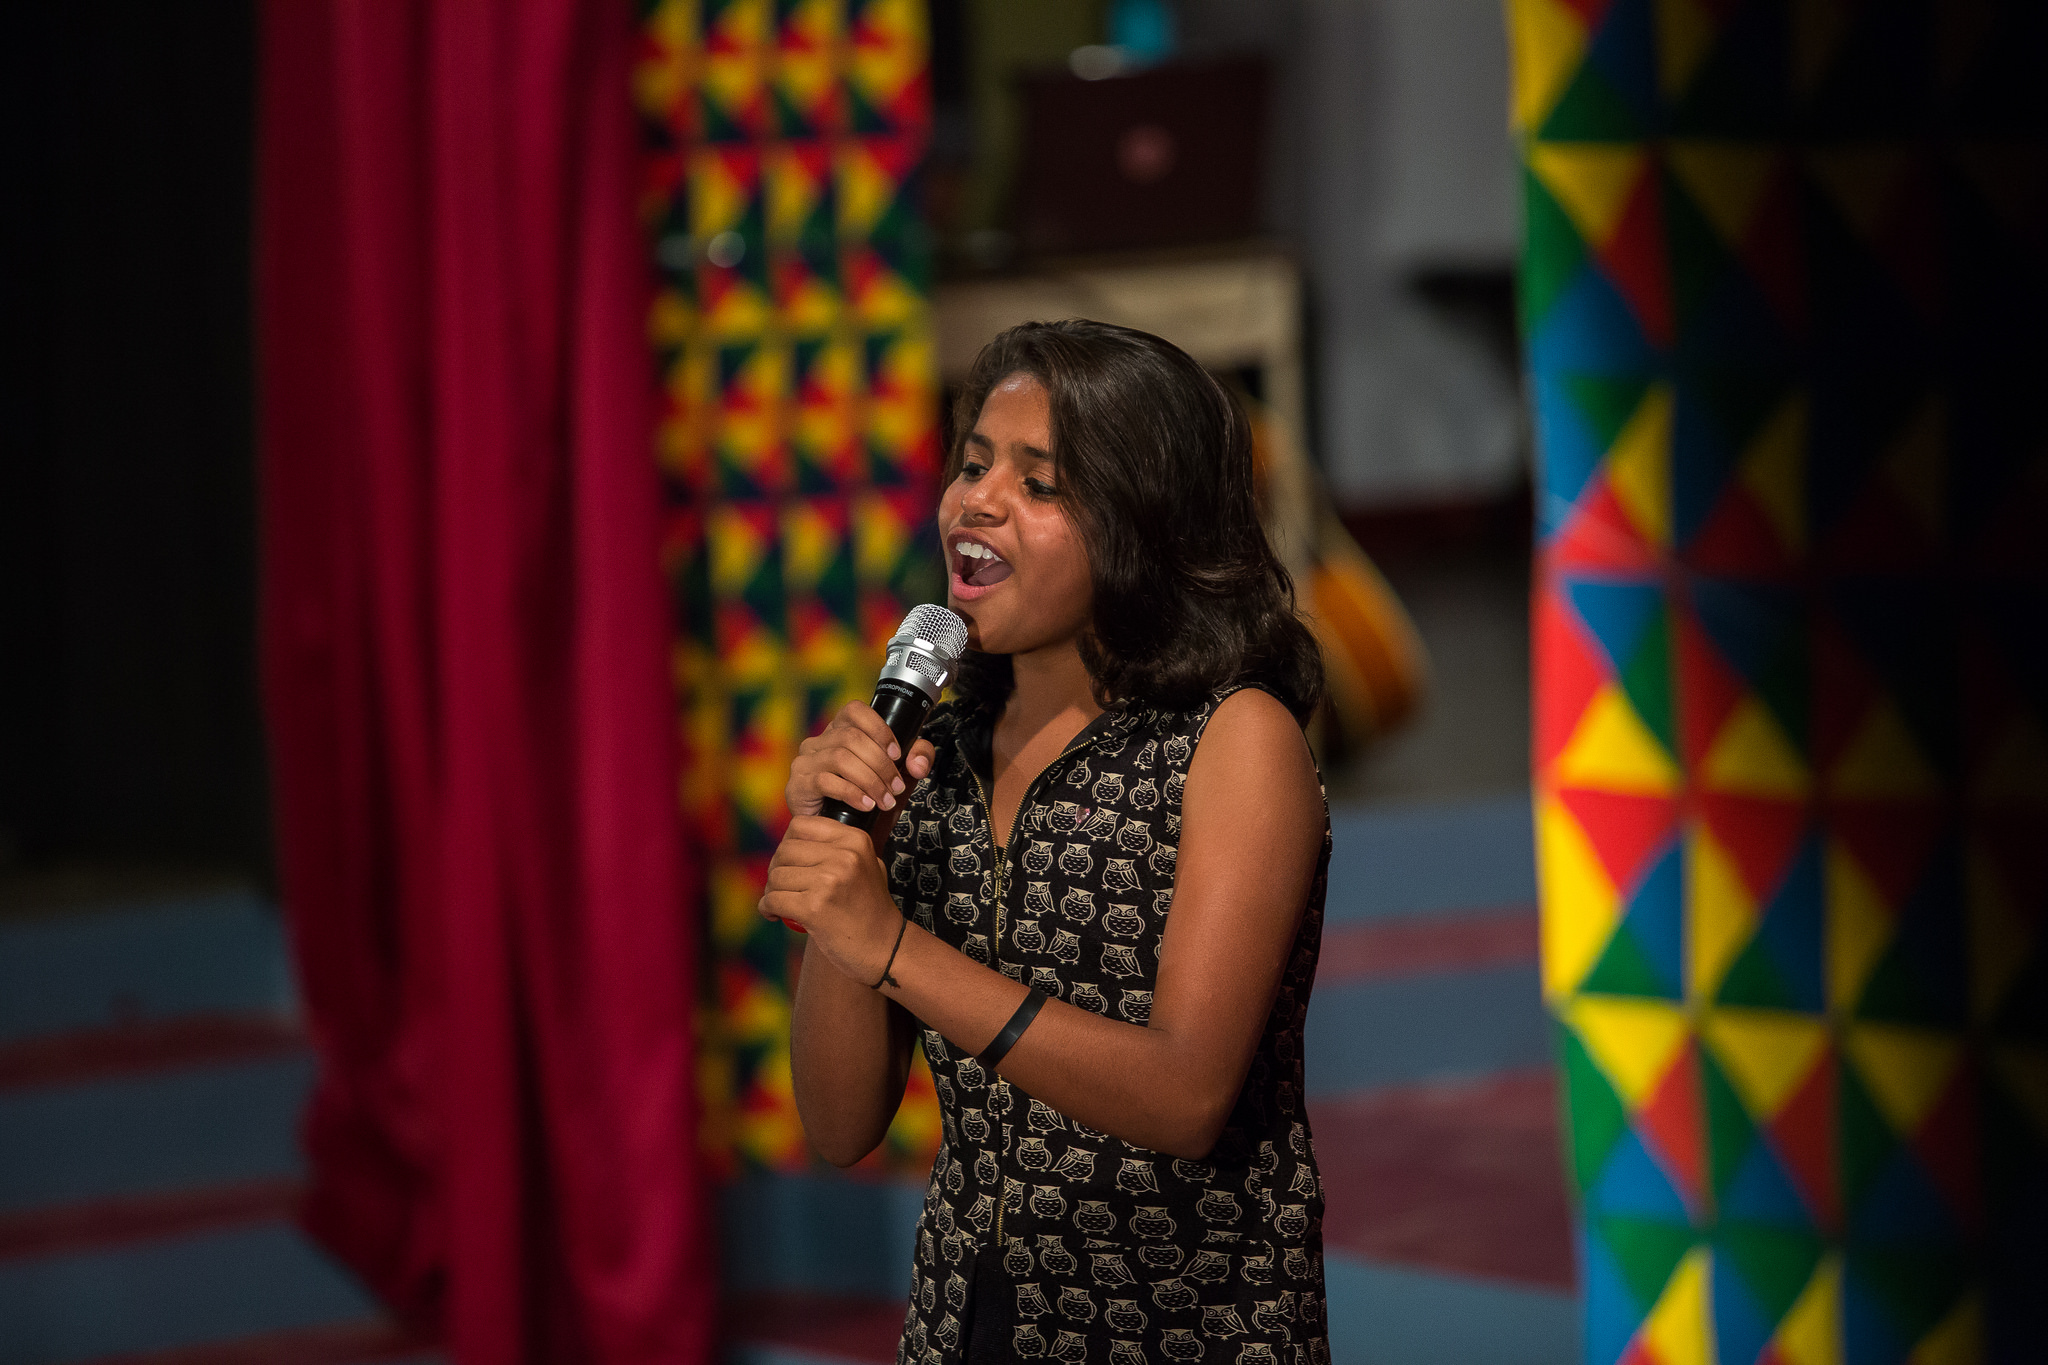 STF Scholar Keerthi at Shanti Bhavan in India. (photo by Kate Lord)